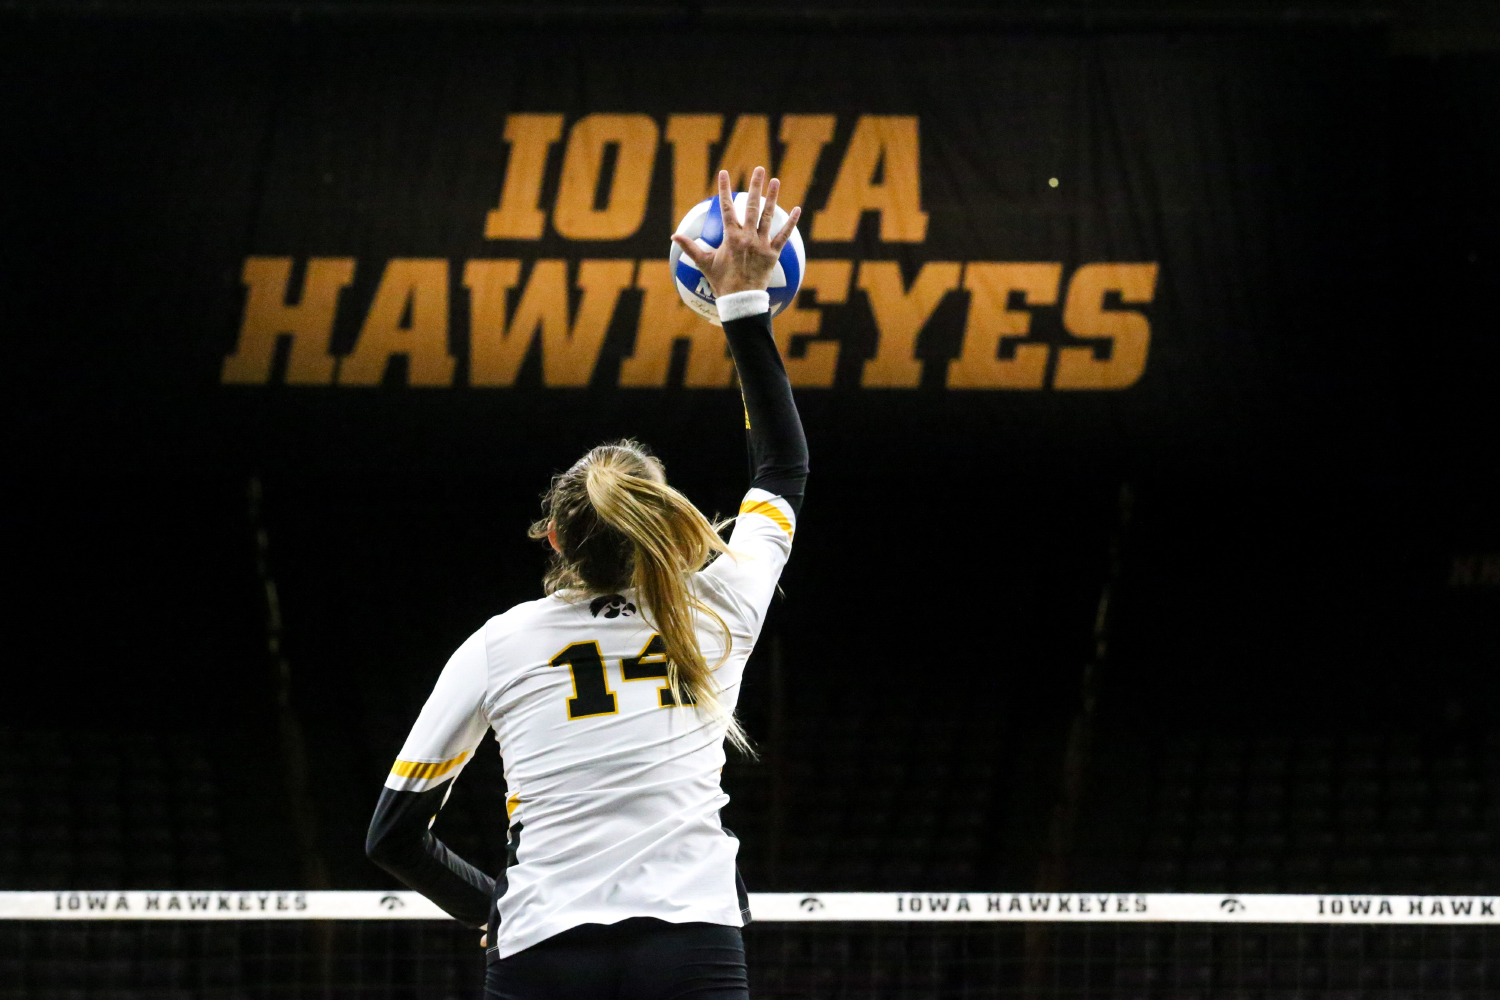 Junior Cali Home serves the ball during the Iowa Volleyball game against Northwestern at Carver-Hawkeye Arena in Iowa City on Wednesday, Oct. 25, 2018. Northwestern defeated Iowa 3-2.